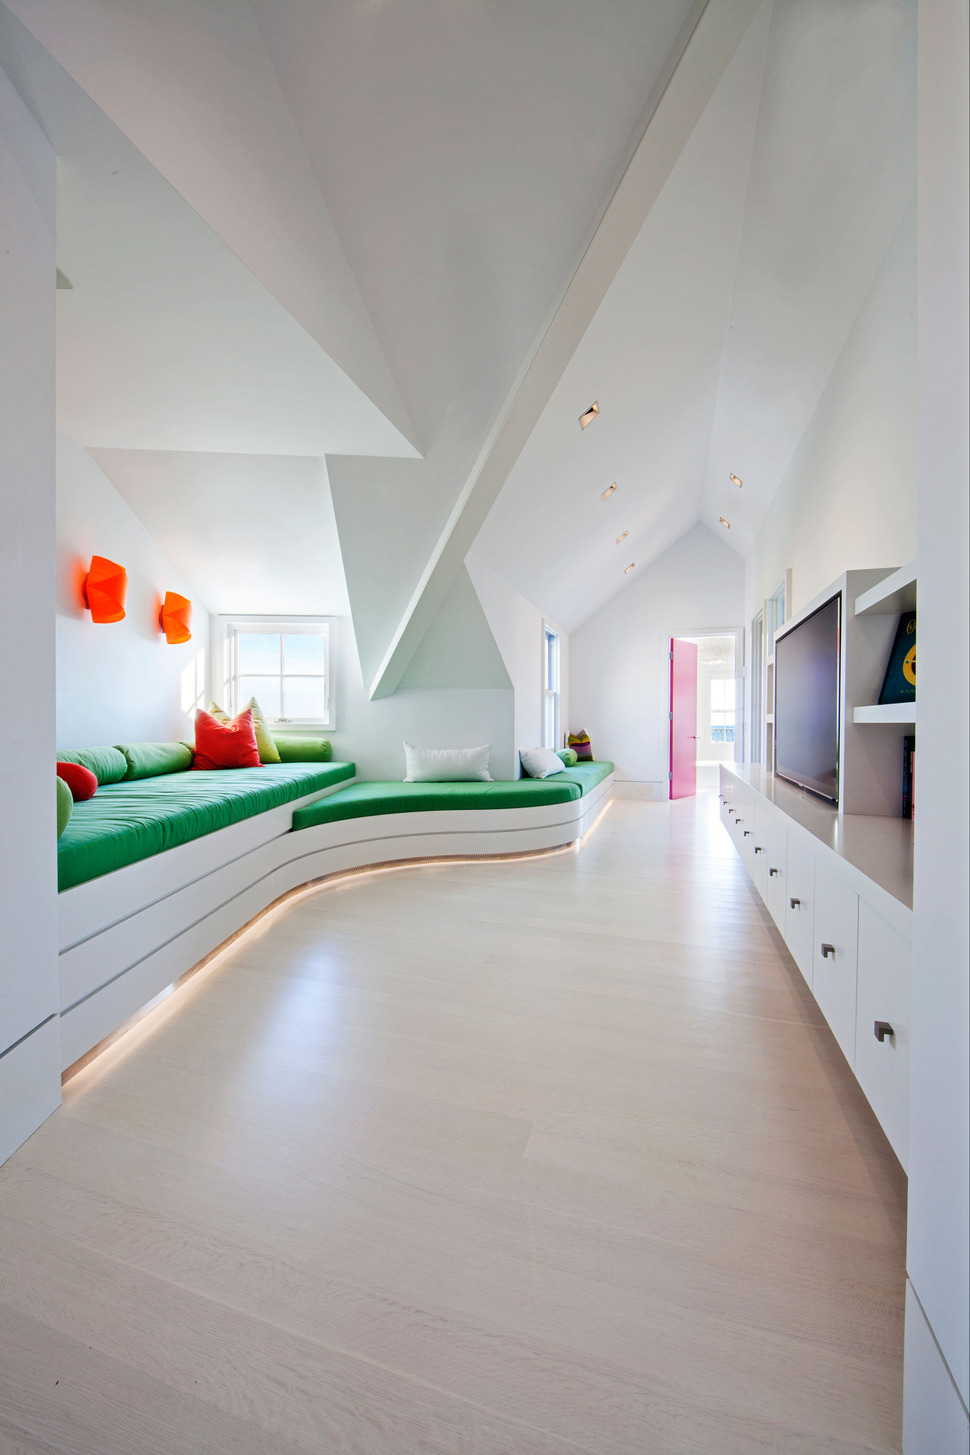 Real Modern House: Stunning Interiors and Popular ...